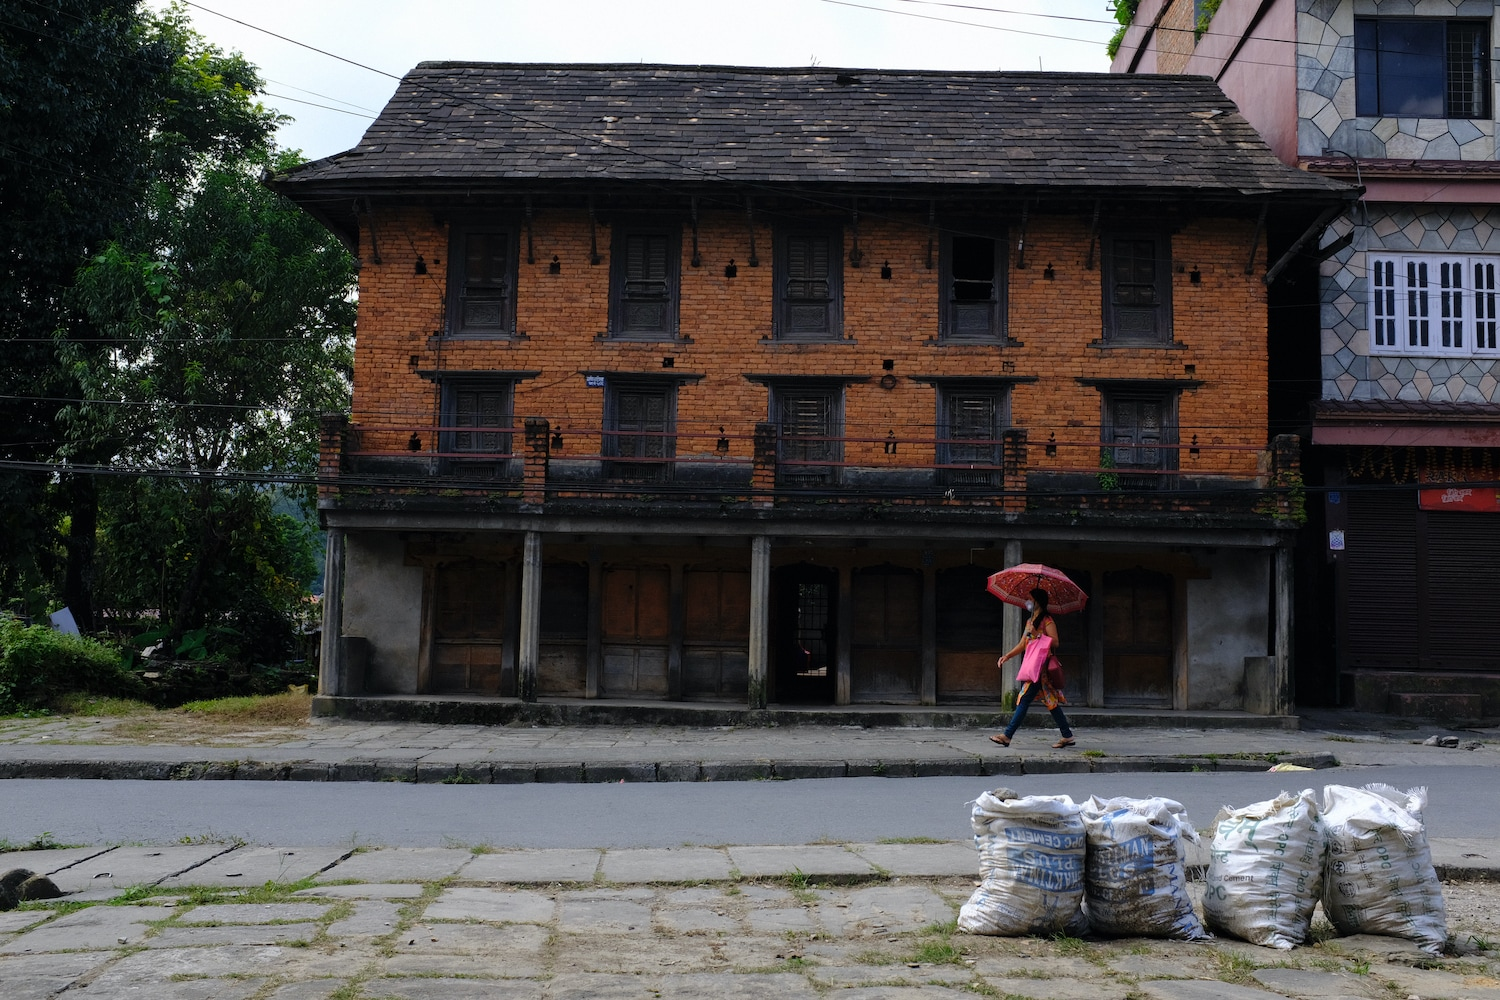 A woman passes by an old traditional house in Pokhara